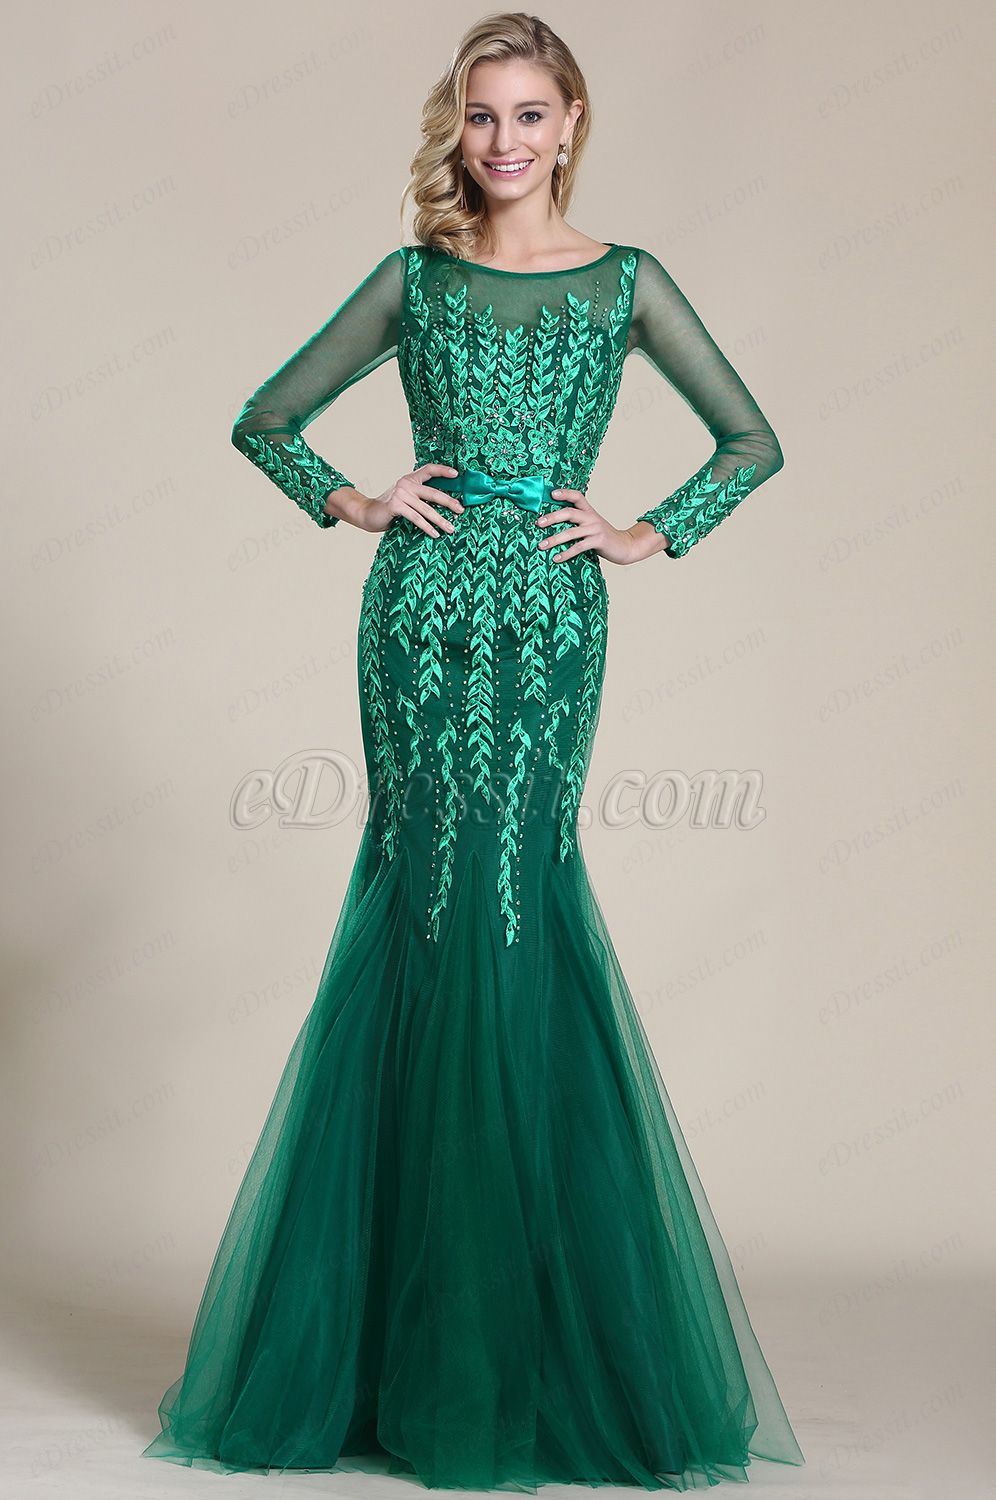 Green dress prom  USD  eDressit Long Sleeves Applique Formal Dress Prom Gown